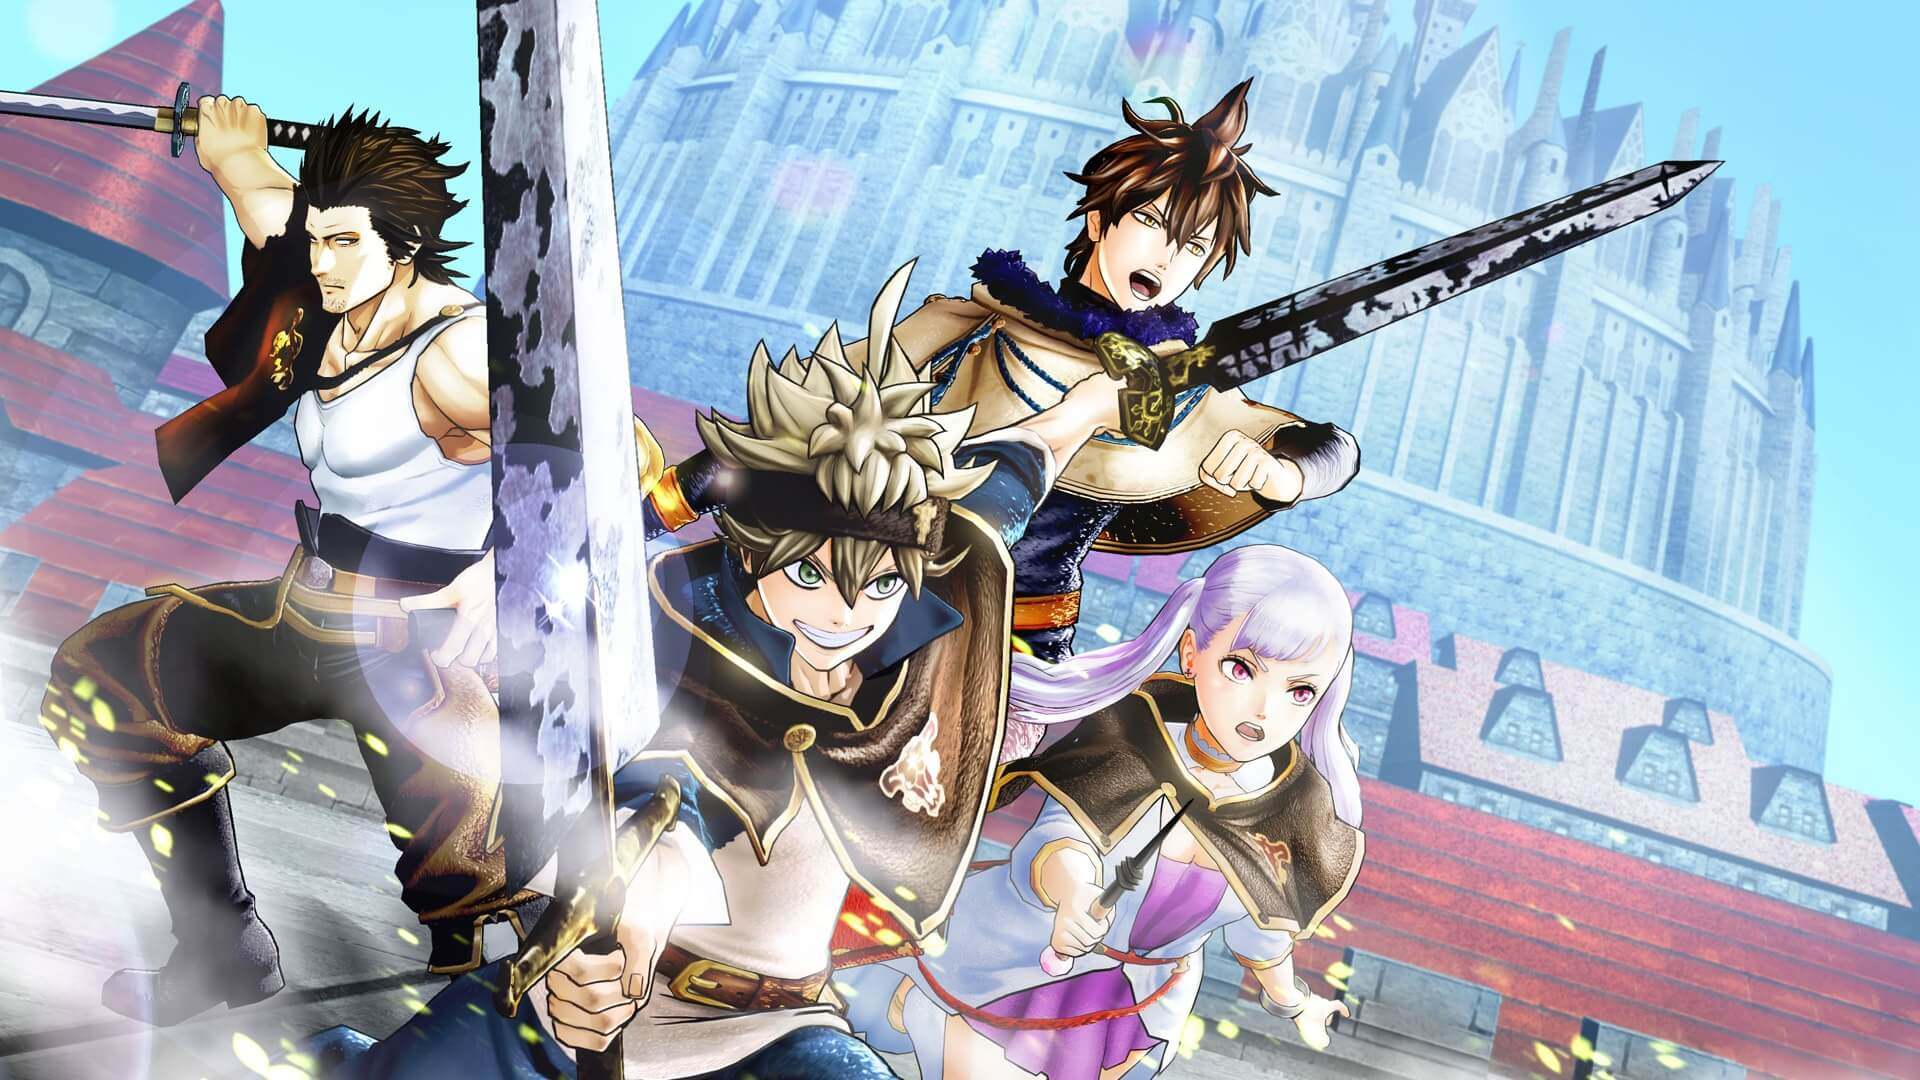 Below you'll find a list of all ps4 wallpapers that have been. Black Clover Aesthetic Ps4 Wallpapers - Wallpaper Cave